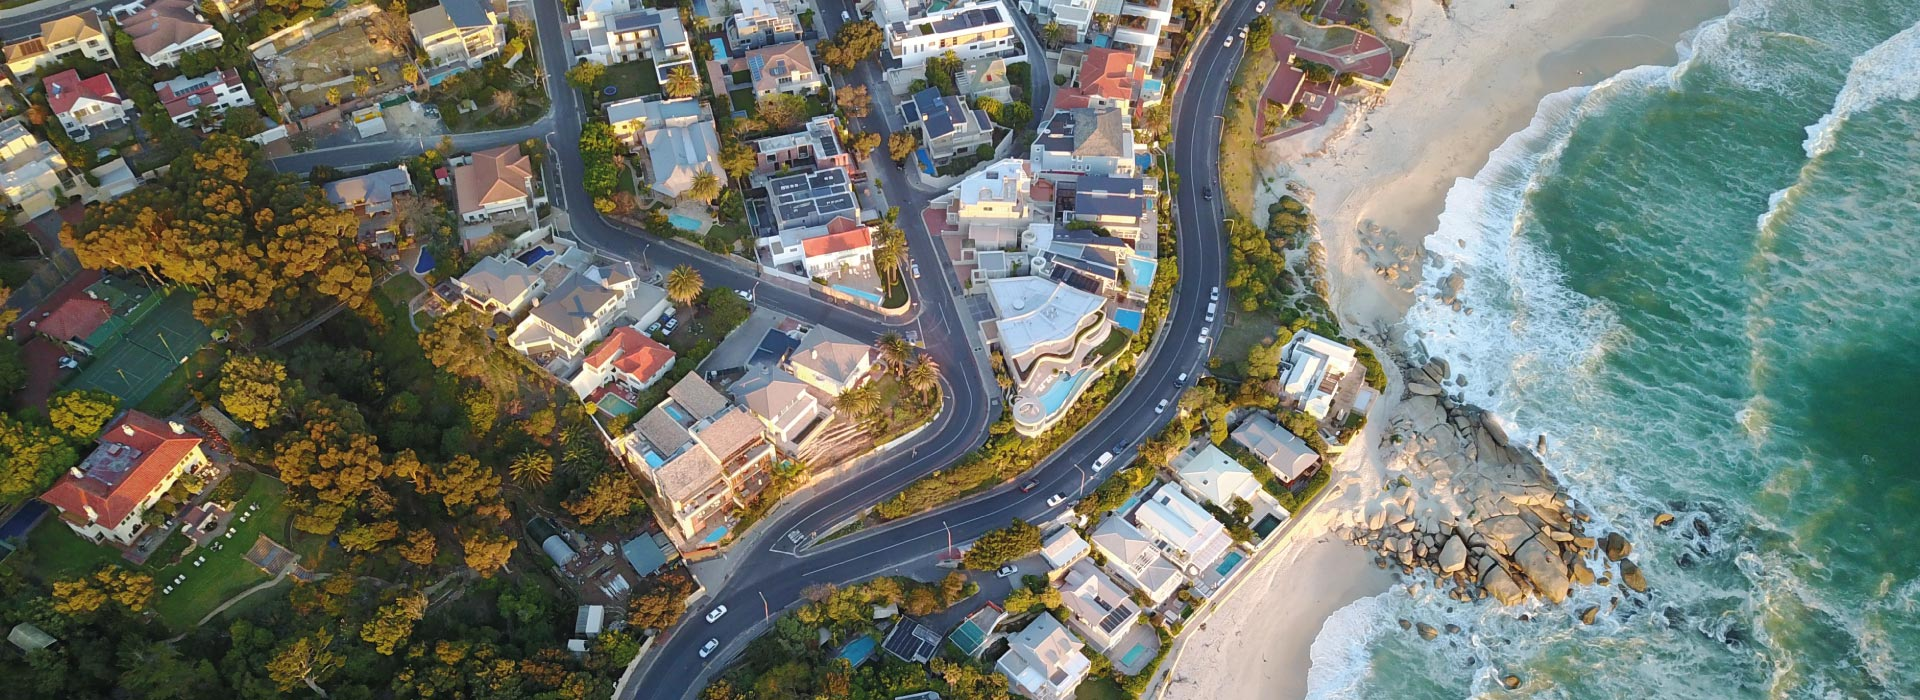 Camps Bay Retreat - Aerial View